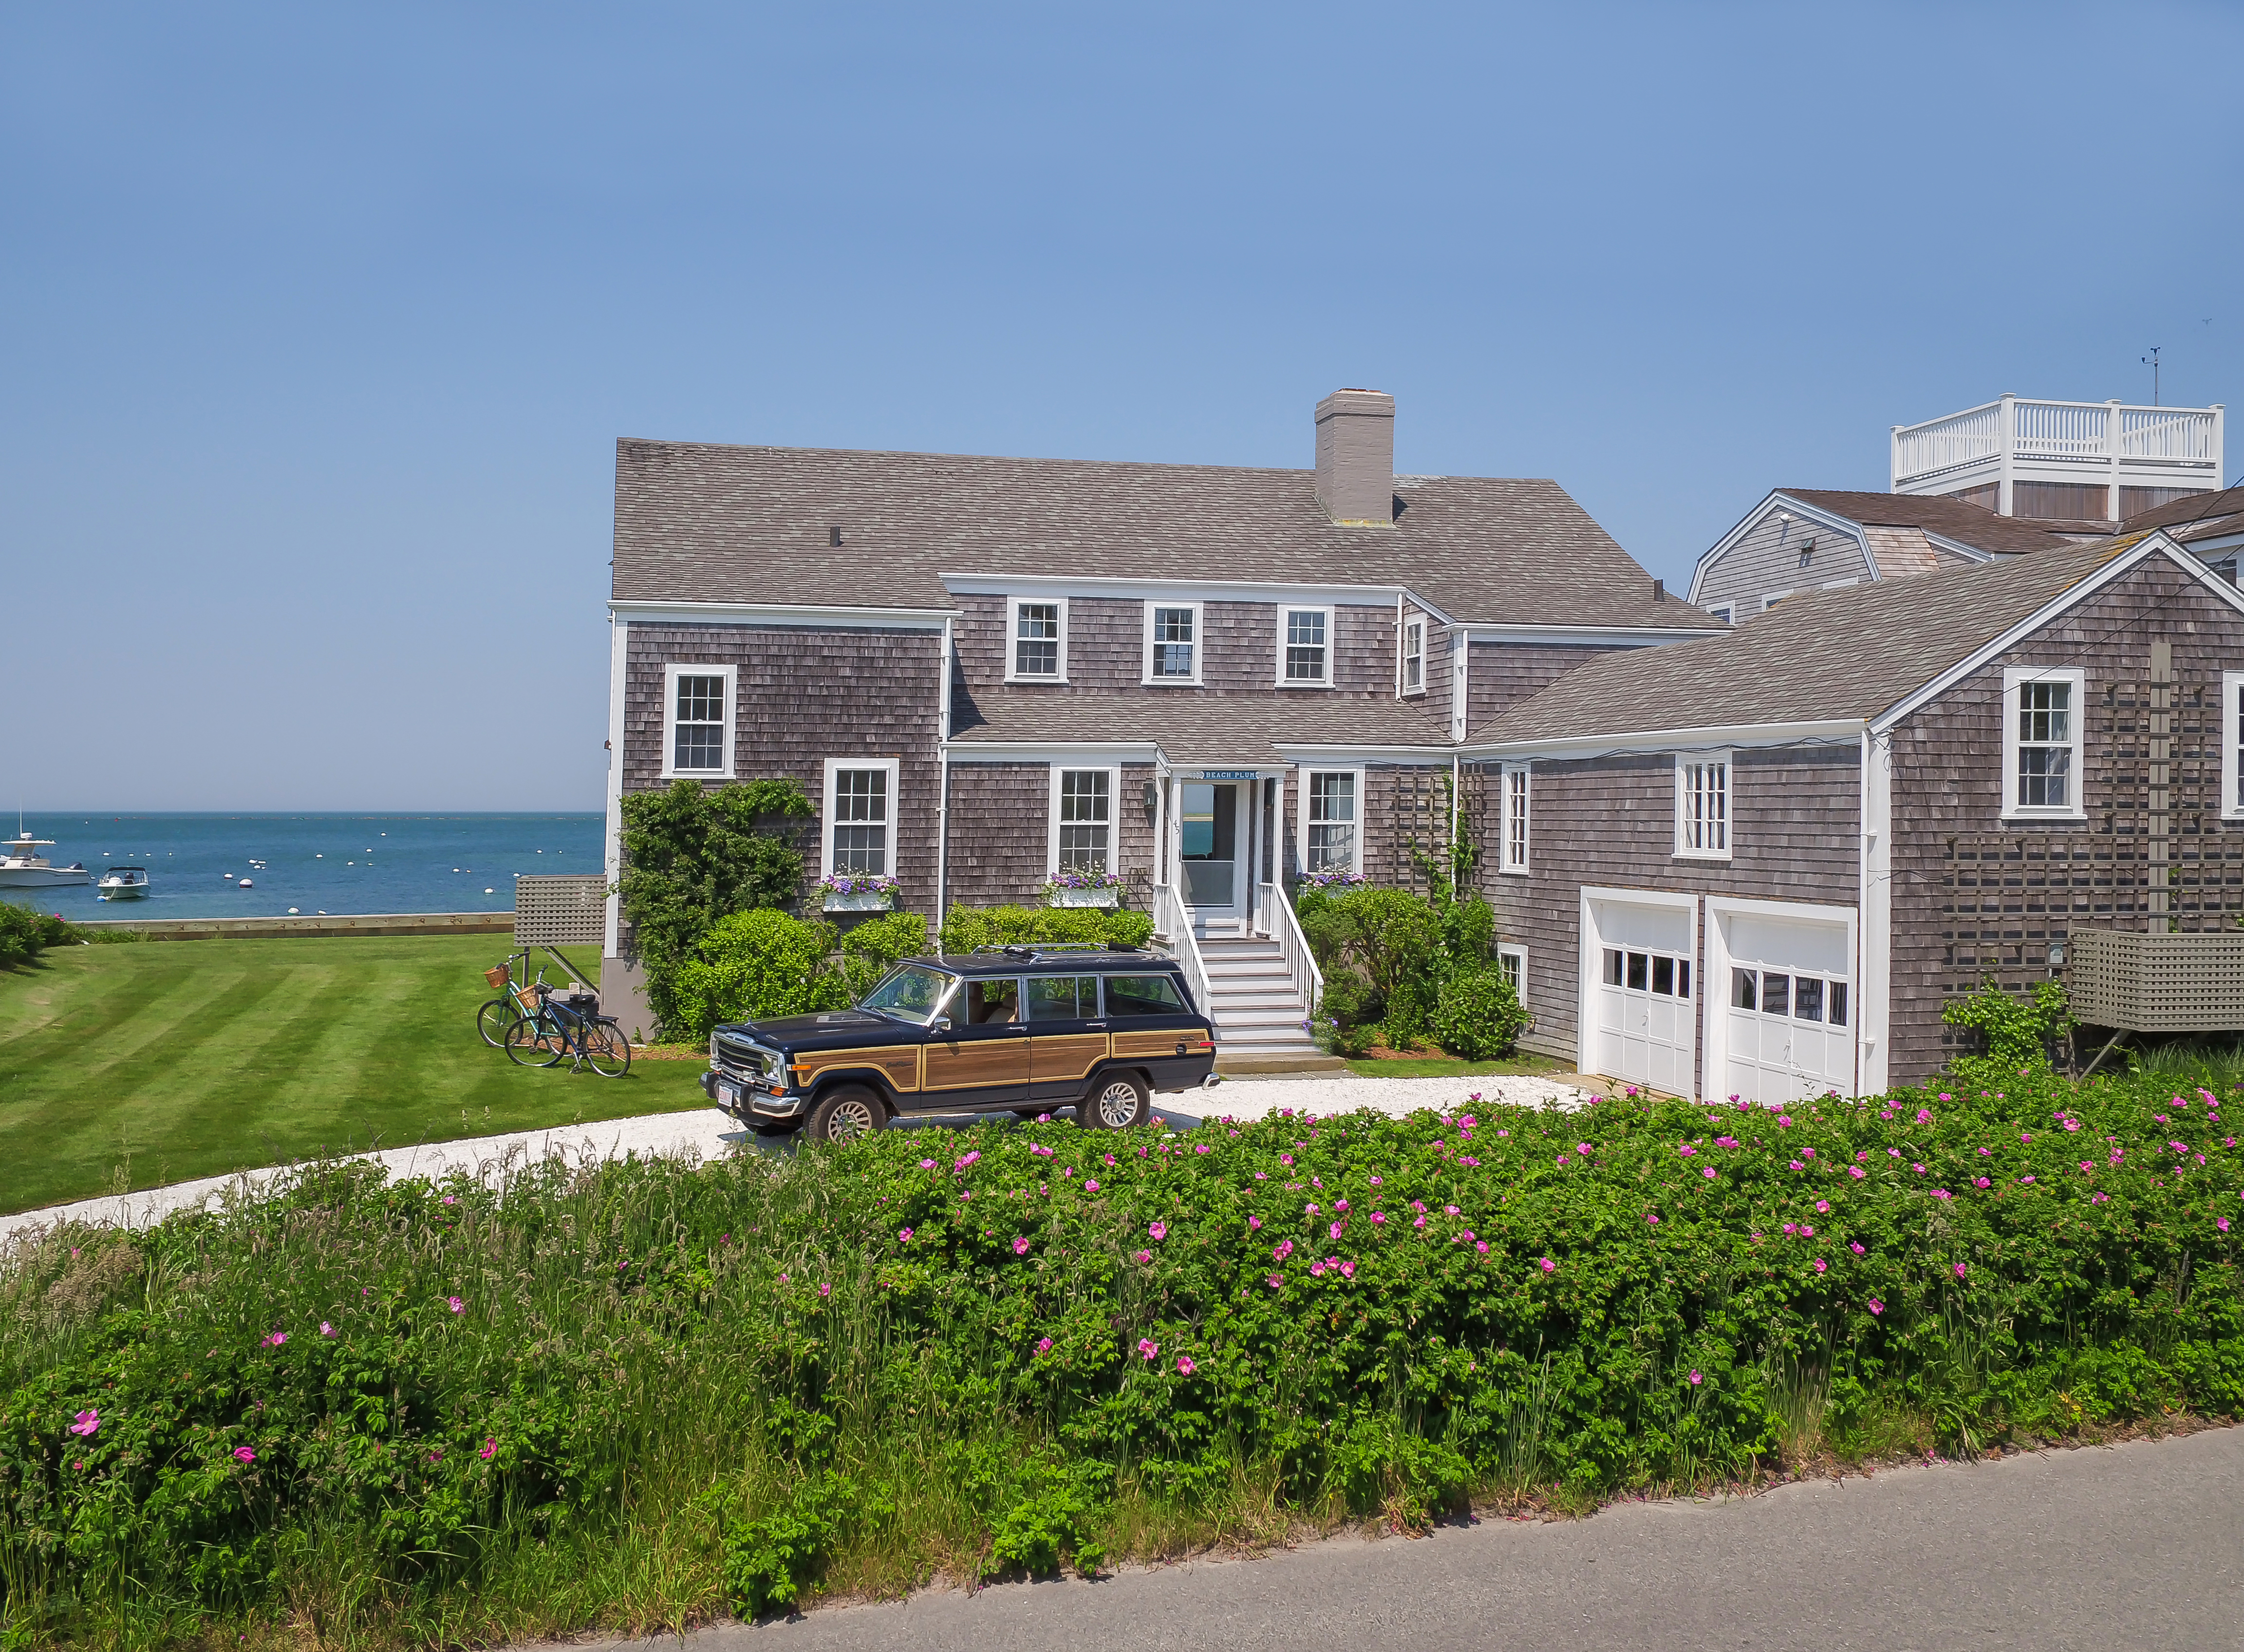 Nantucket Cottage on the Water